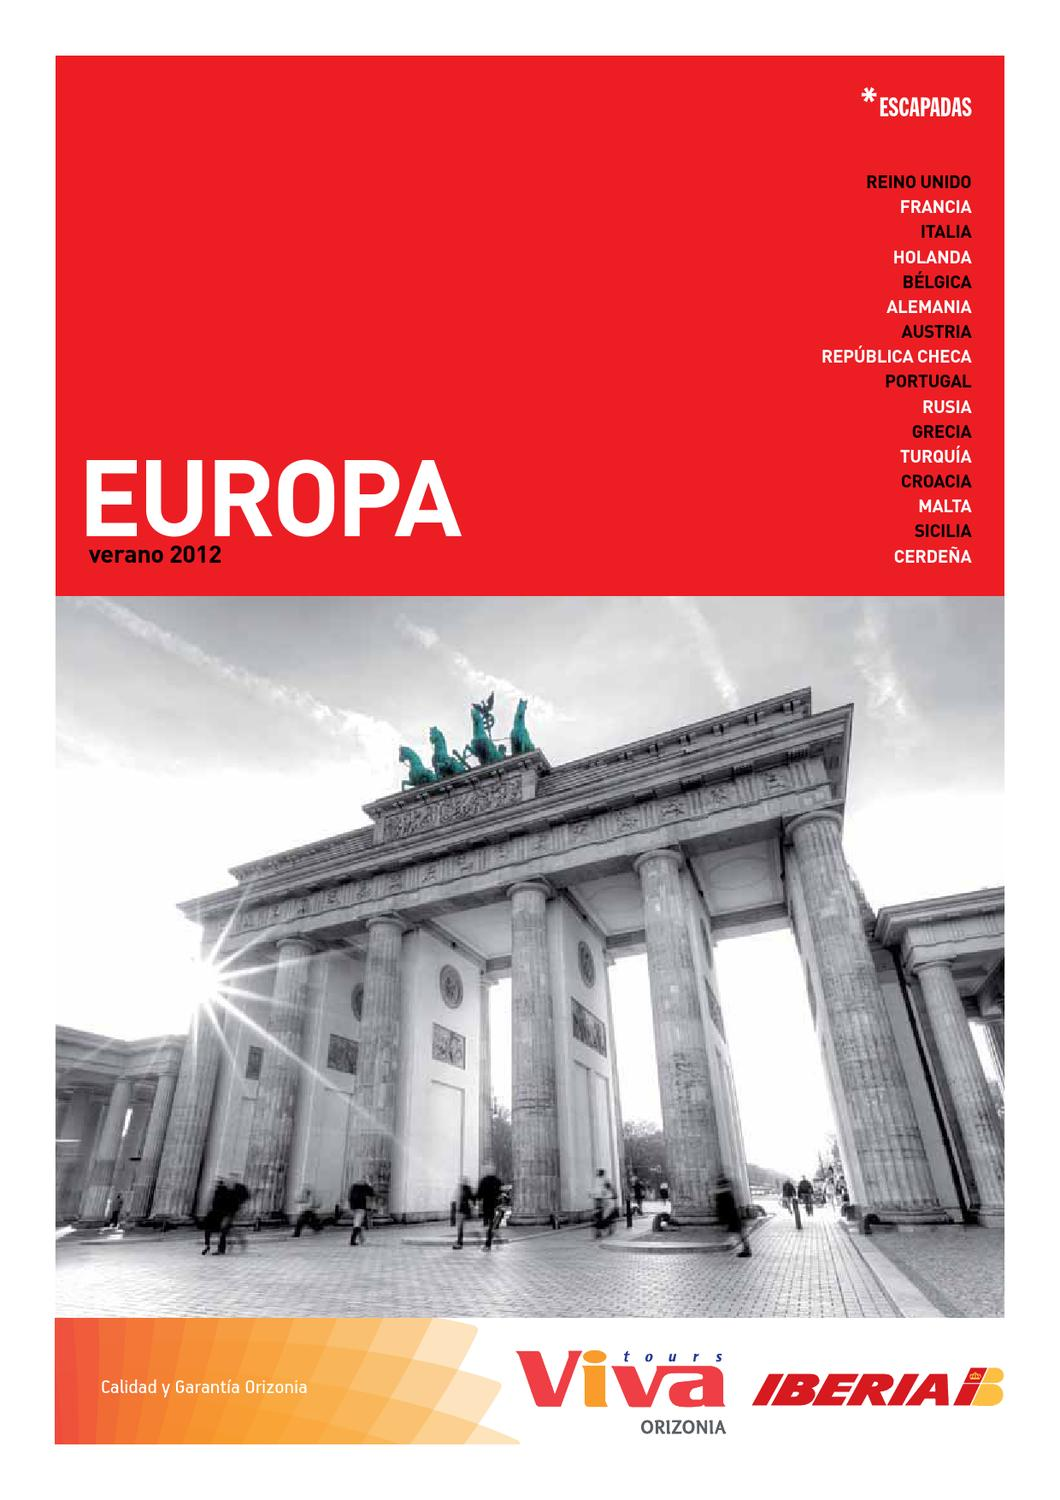 Viva Tours Issuu Vivatours Europa By rQthsdC